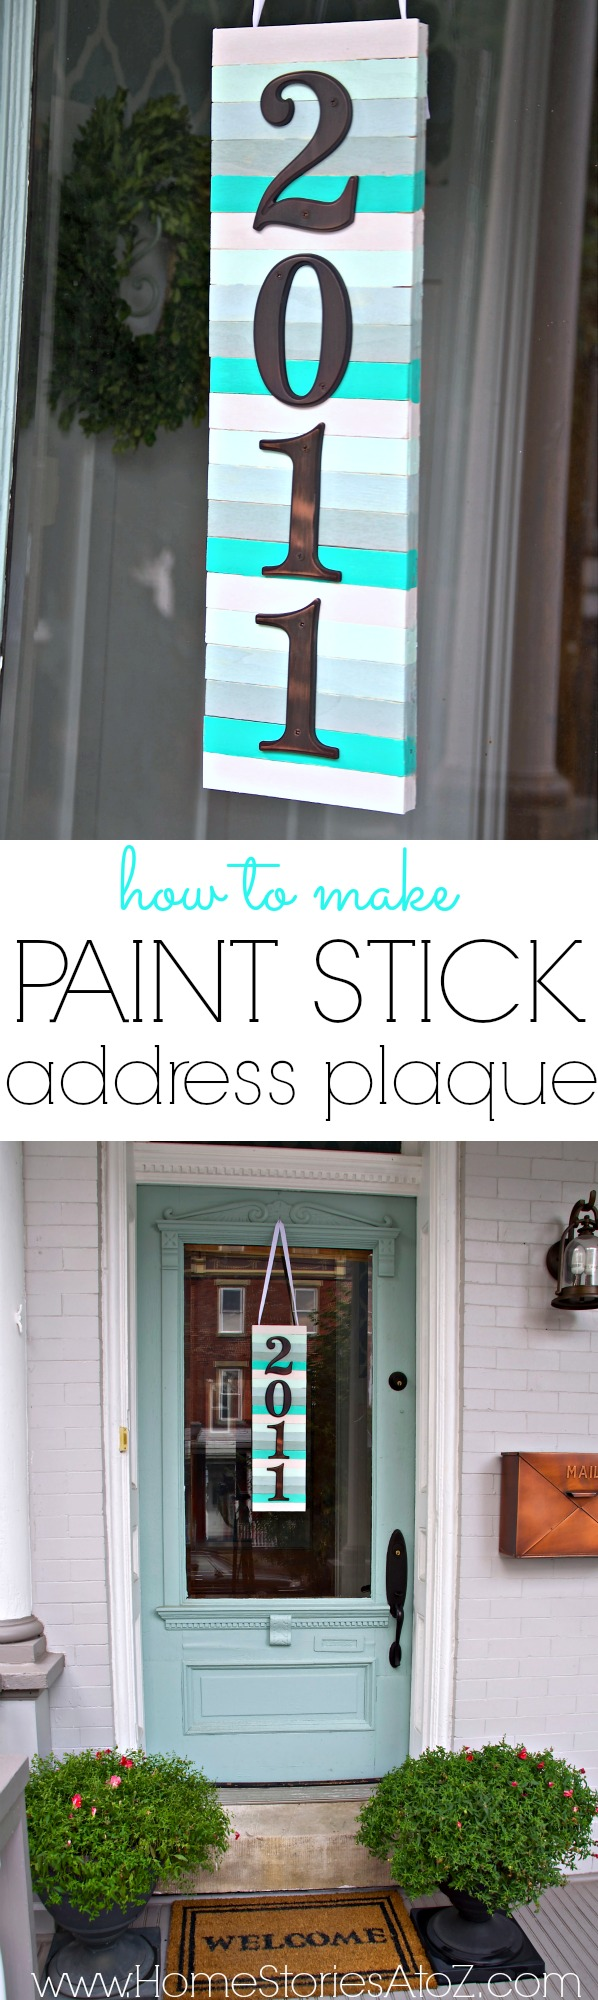 Paint Stick With House Numbers.